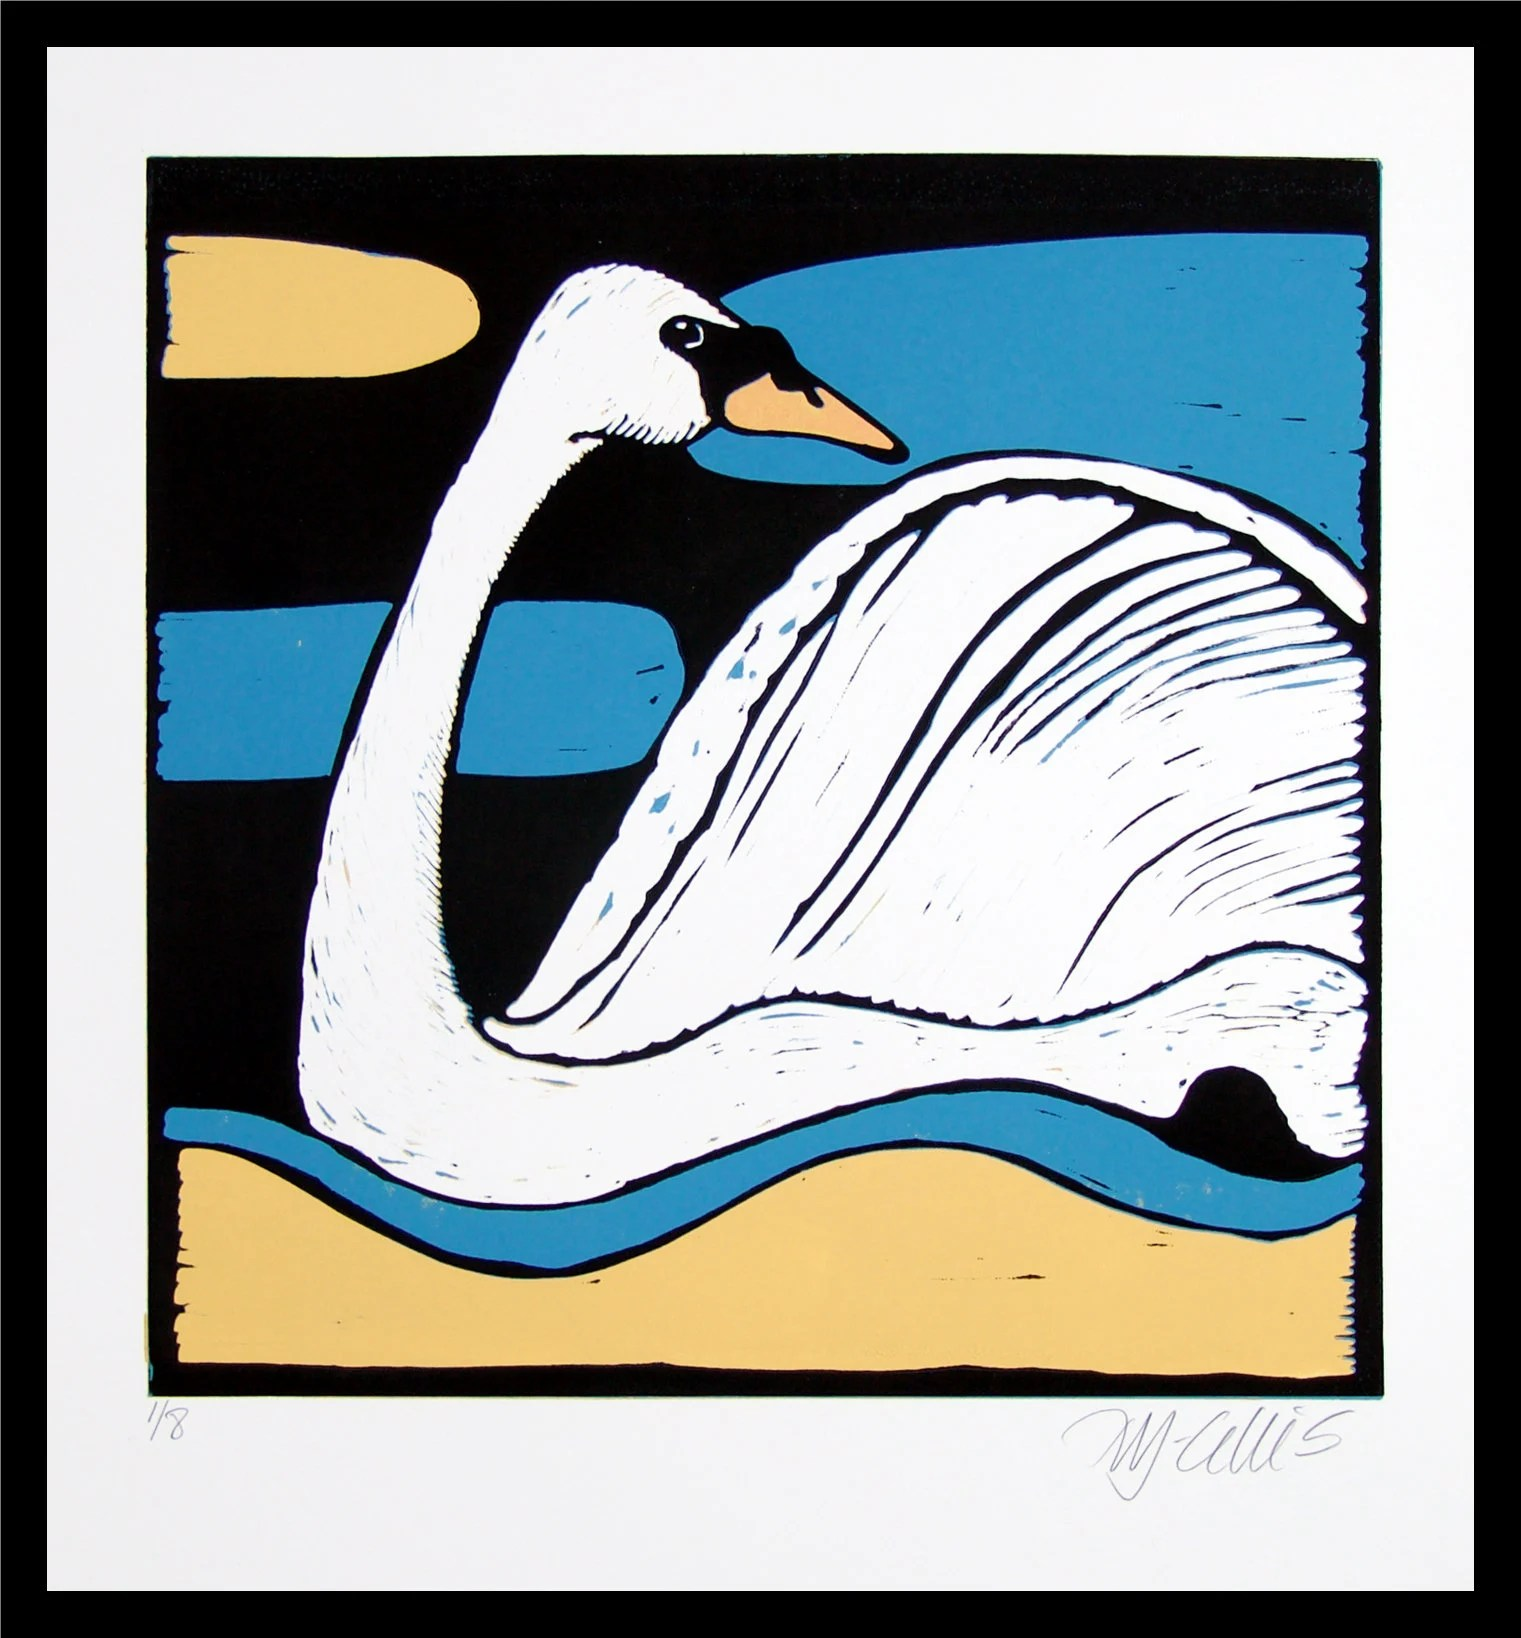 Linocuts lovingly made for your wall von linocutheaven auf Etsy